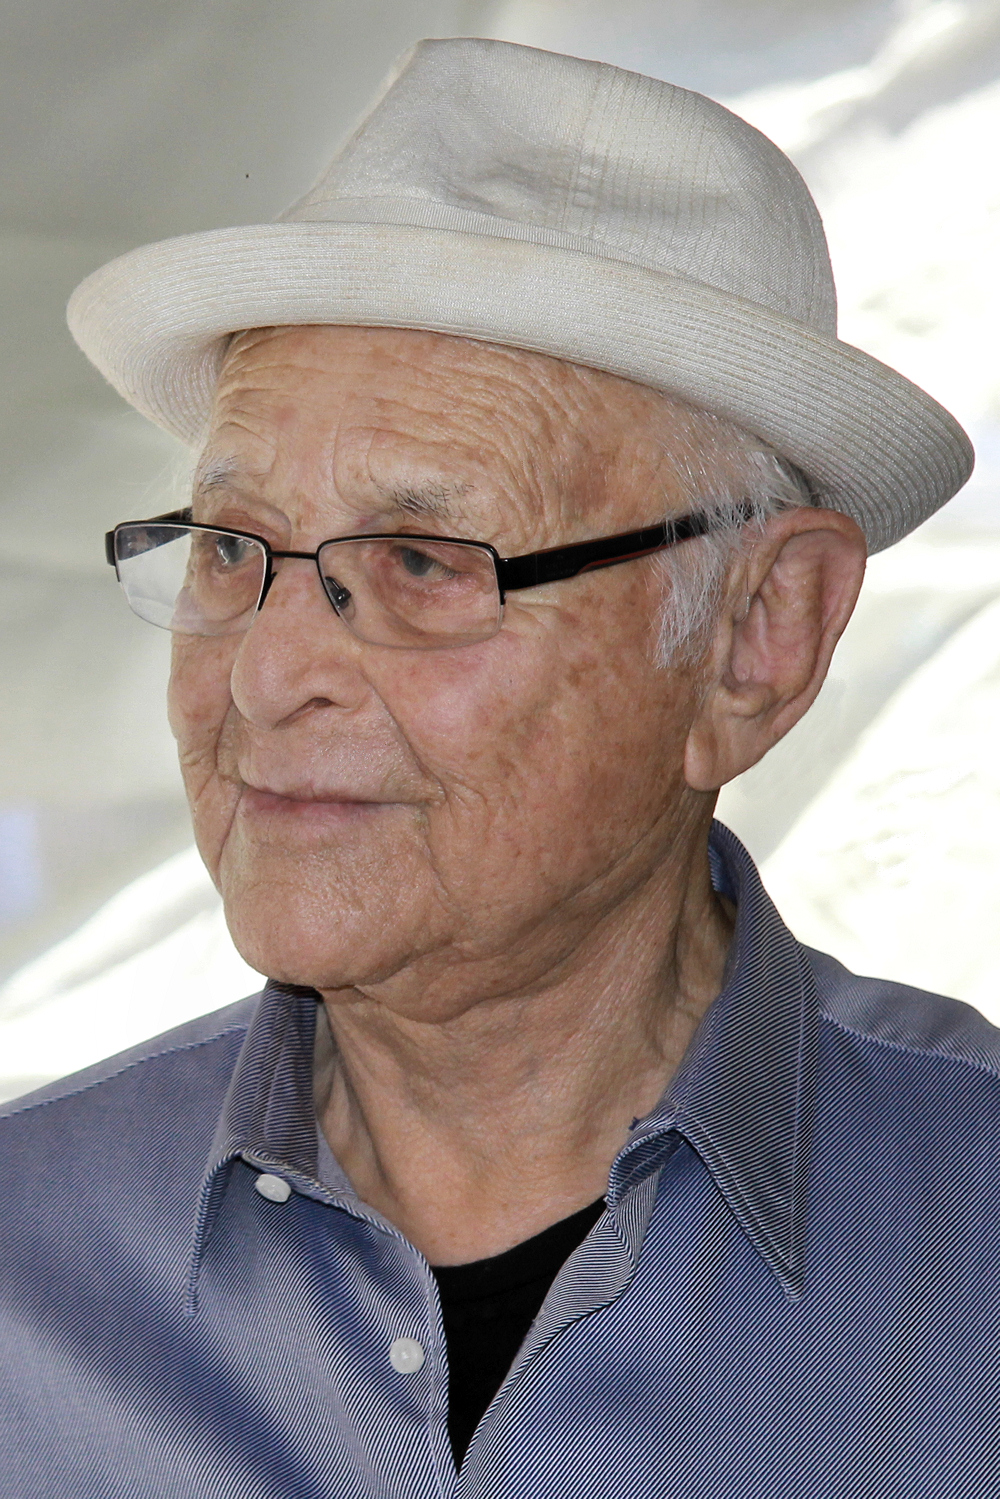 norman lear filmnorman lear film, norman lear, norman lear net worth, norman lear bio, norman lear center, norman lear memoir, norman lear sitcom, norman lear sitcom crossword, norman lear book, norman lear imdb, norman lear house, norman lear quotes, norman lear documentary, norman lear foundation, norman lear interview, norman lear net worth 2013, norman lear twitter, norman lear south park, norman lear declaration of independence